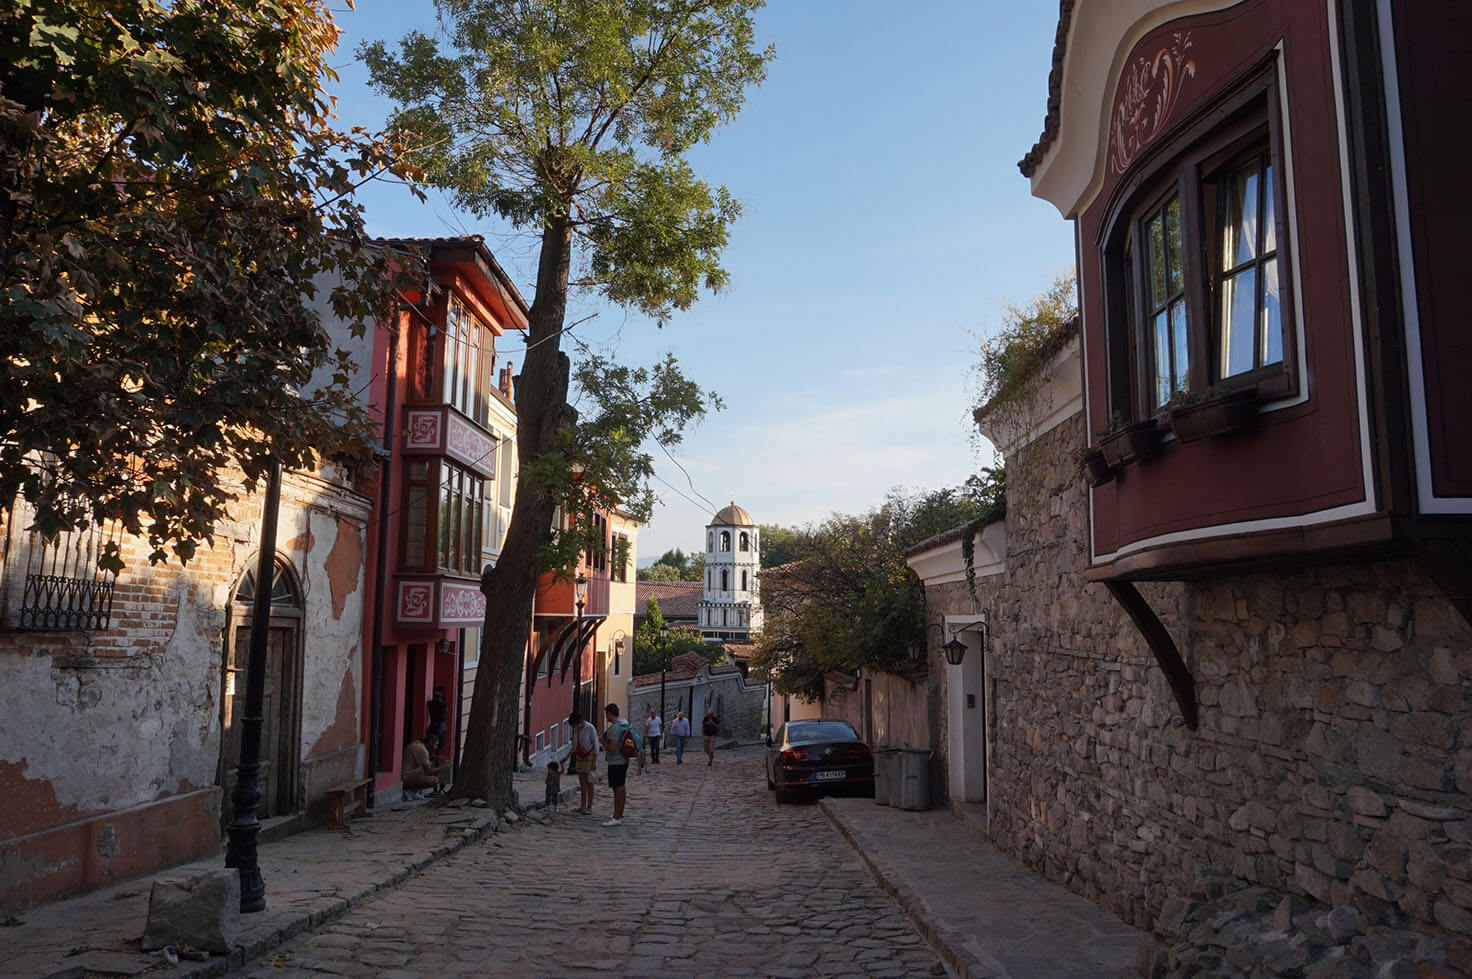 Plovdiv Old Town - Church of St Constantine and Helena